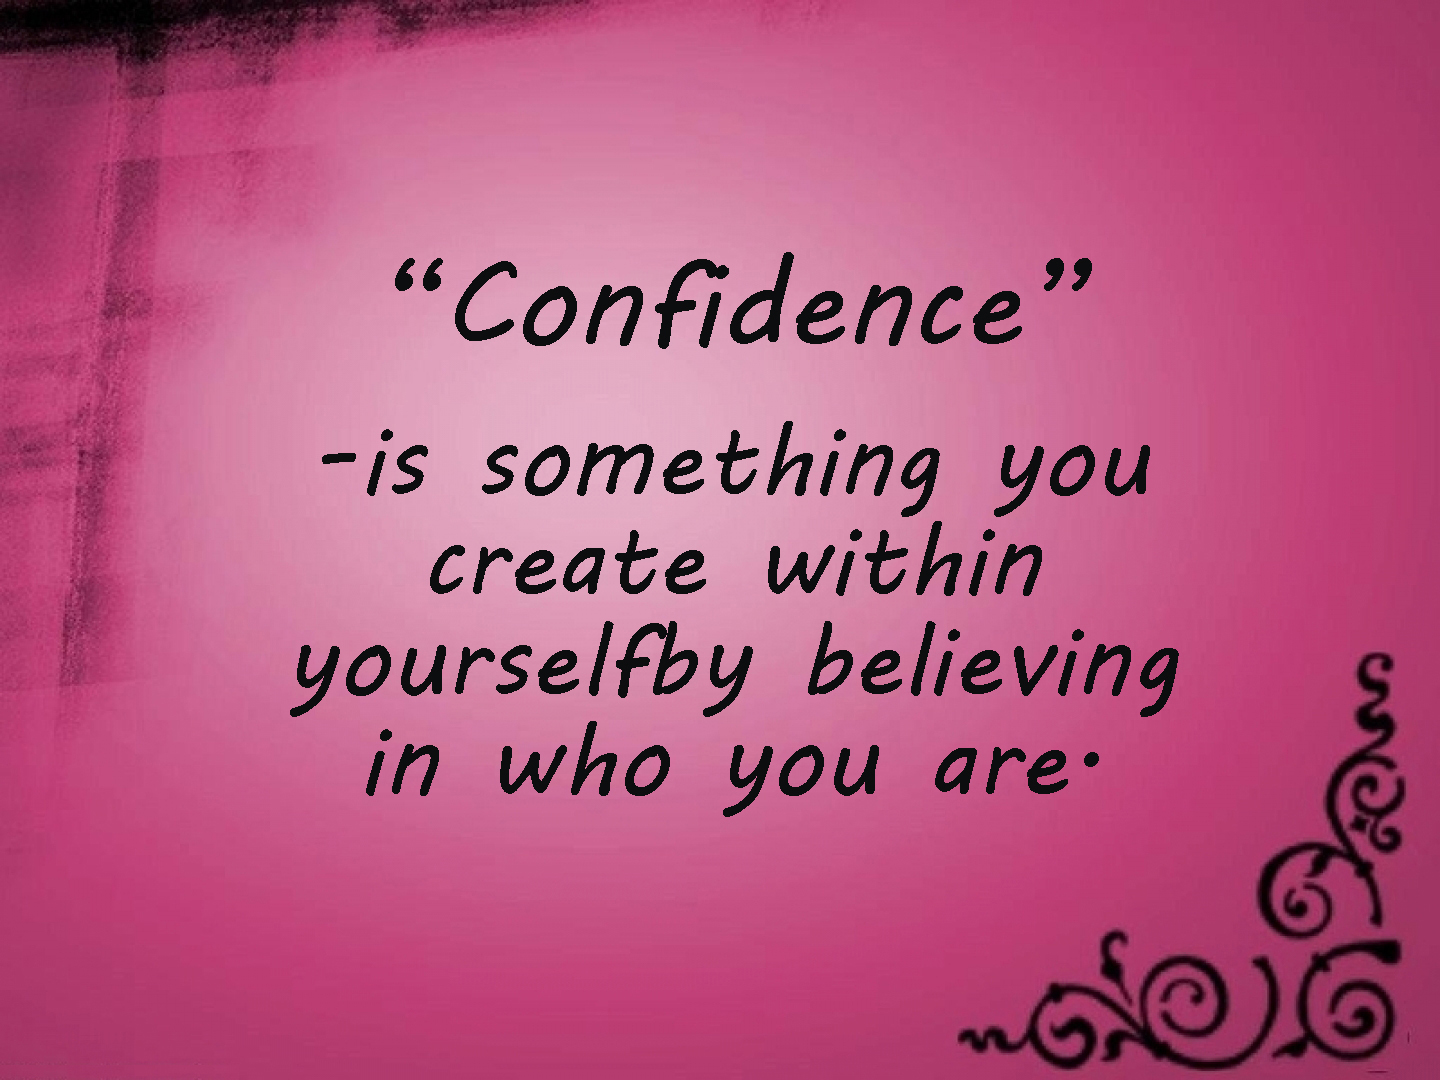 Quotes About Being Confident Quotes About Being Confident Extraordinary Best 25 Self Confidence